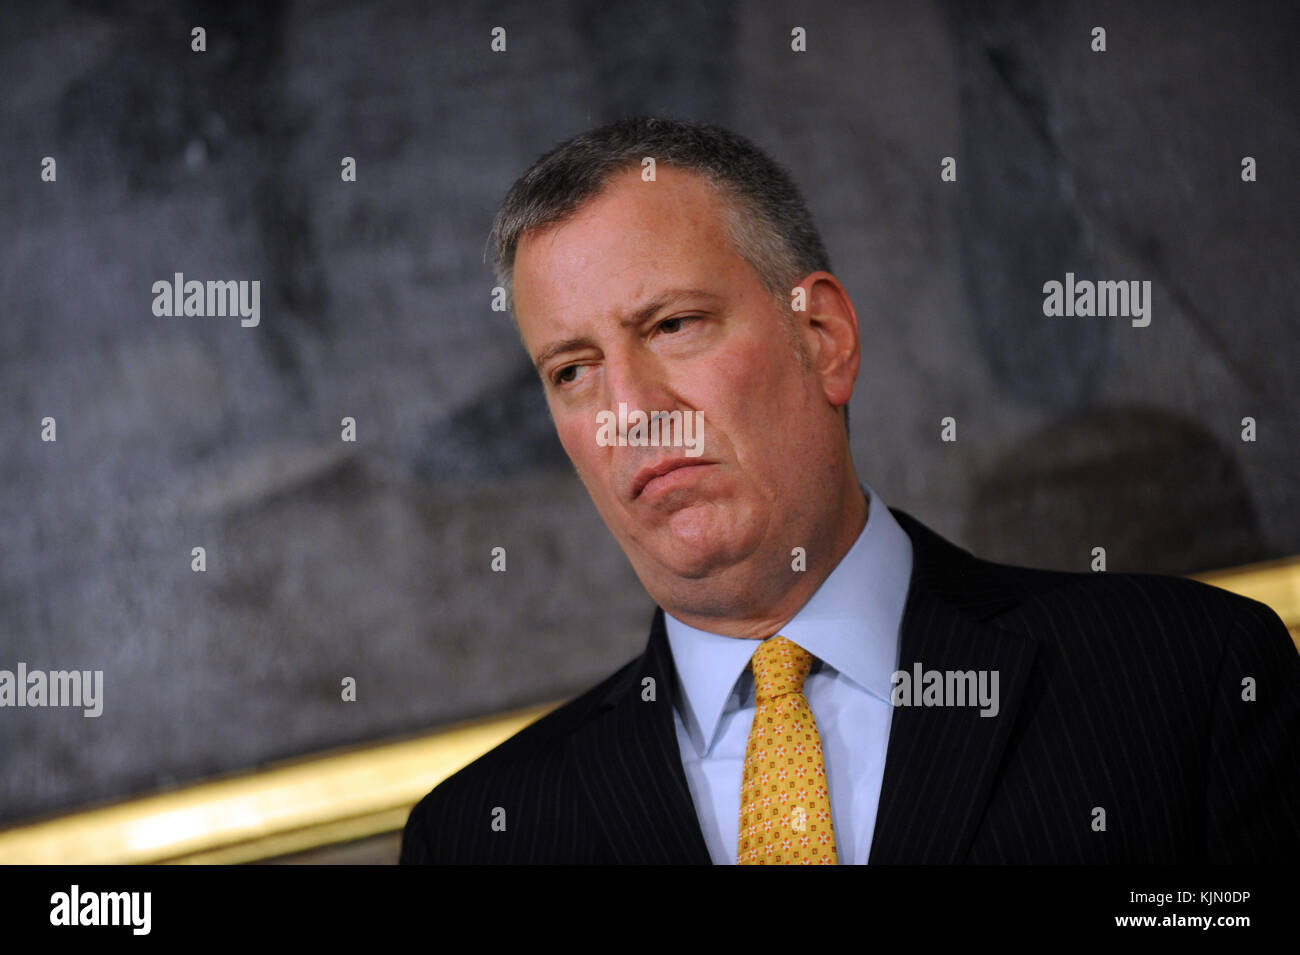 NEW YORK, NY - JANUARY 12: Press conference on public safety with New York Mayor Bill de Blasio, Chief Administrative - Stock Image